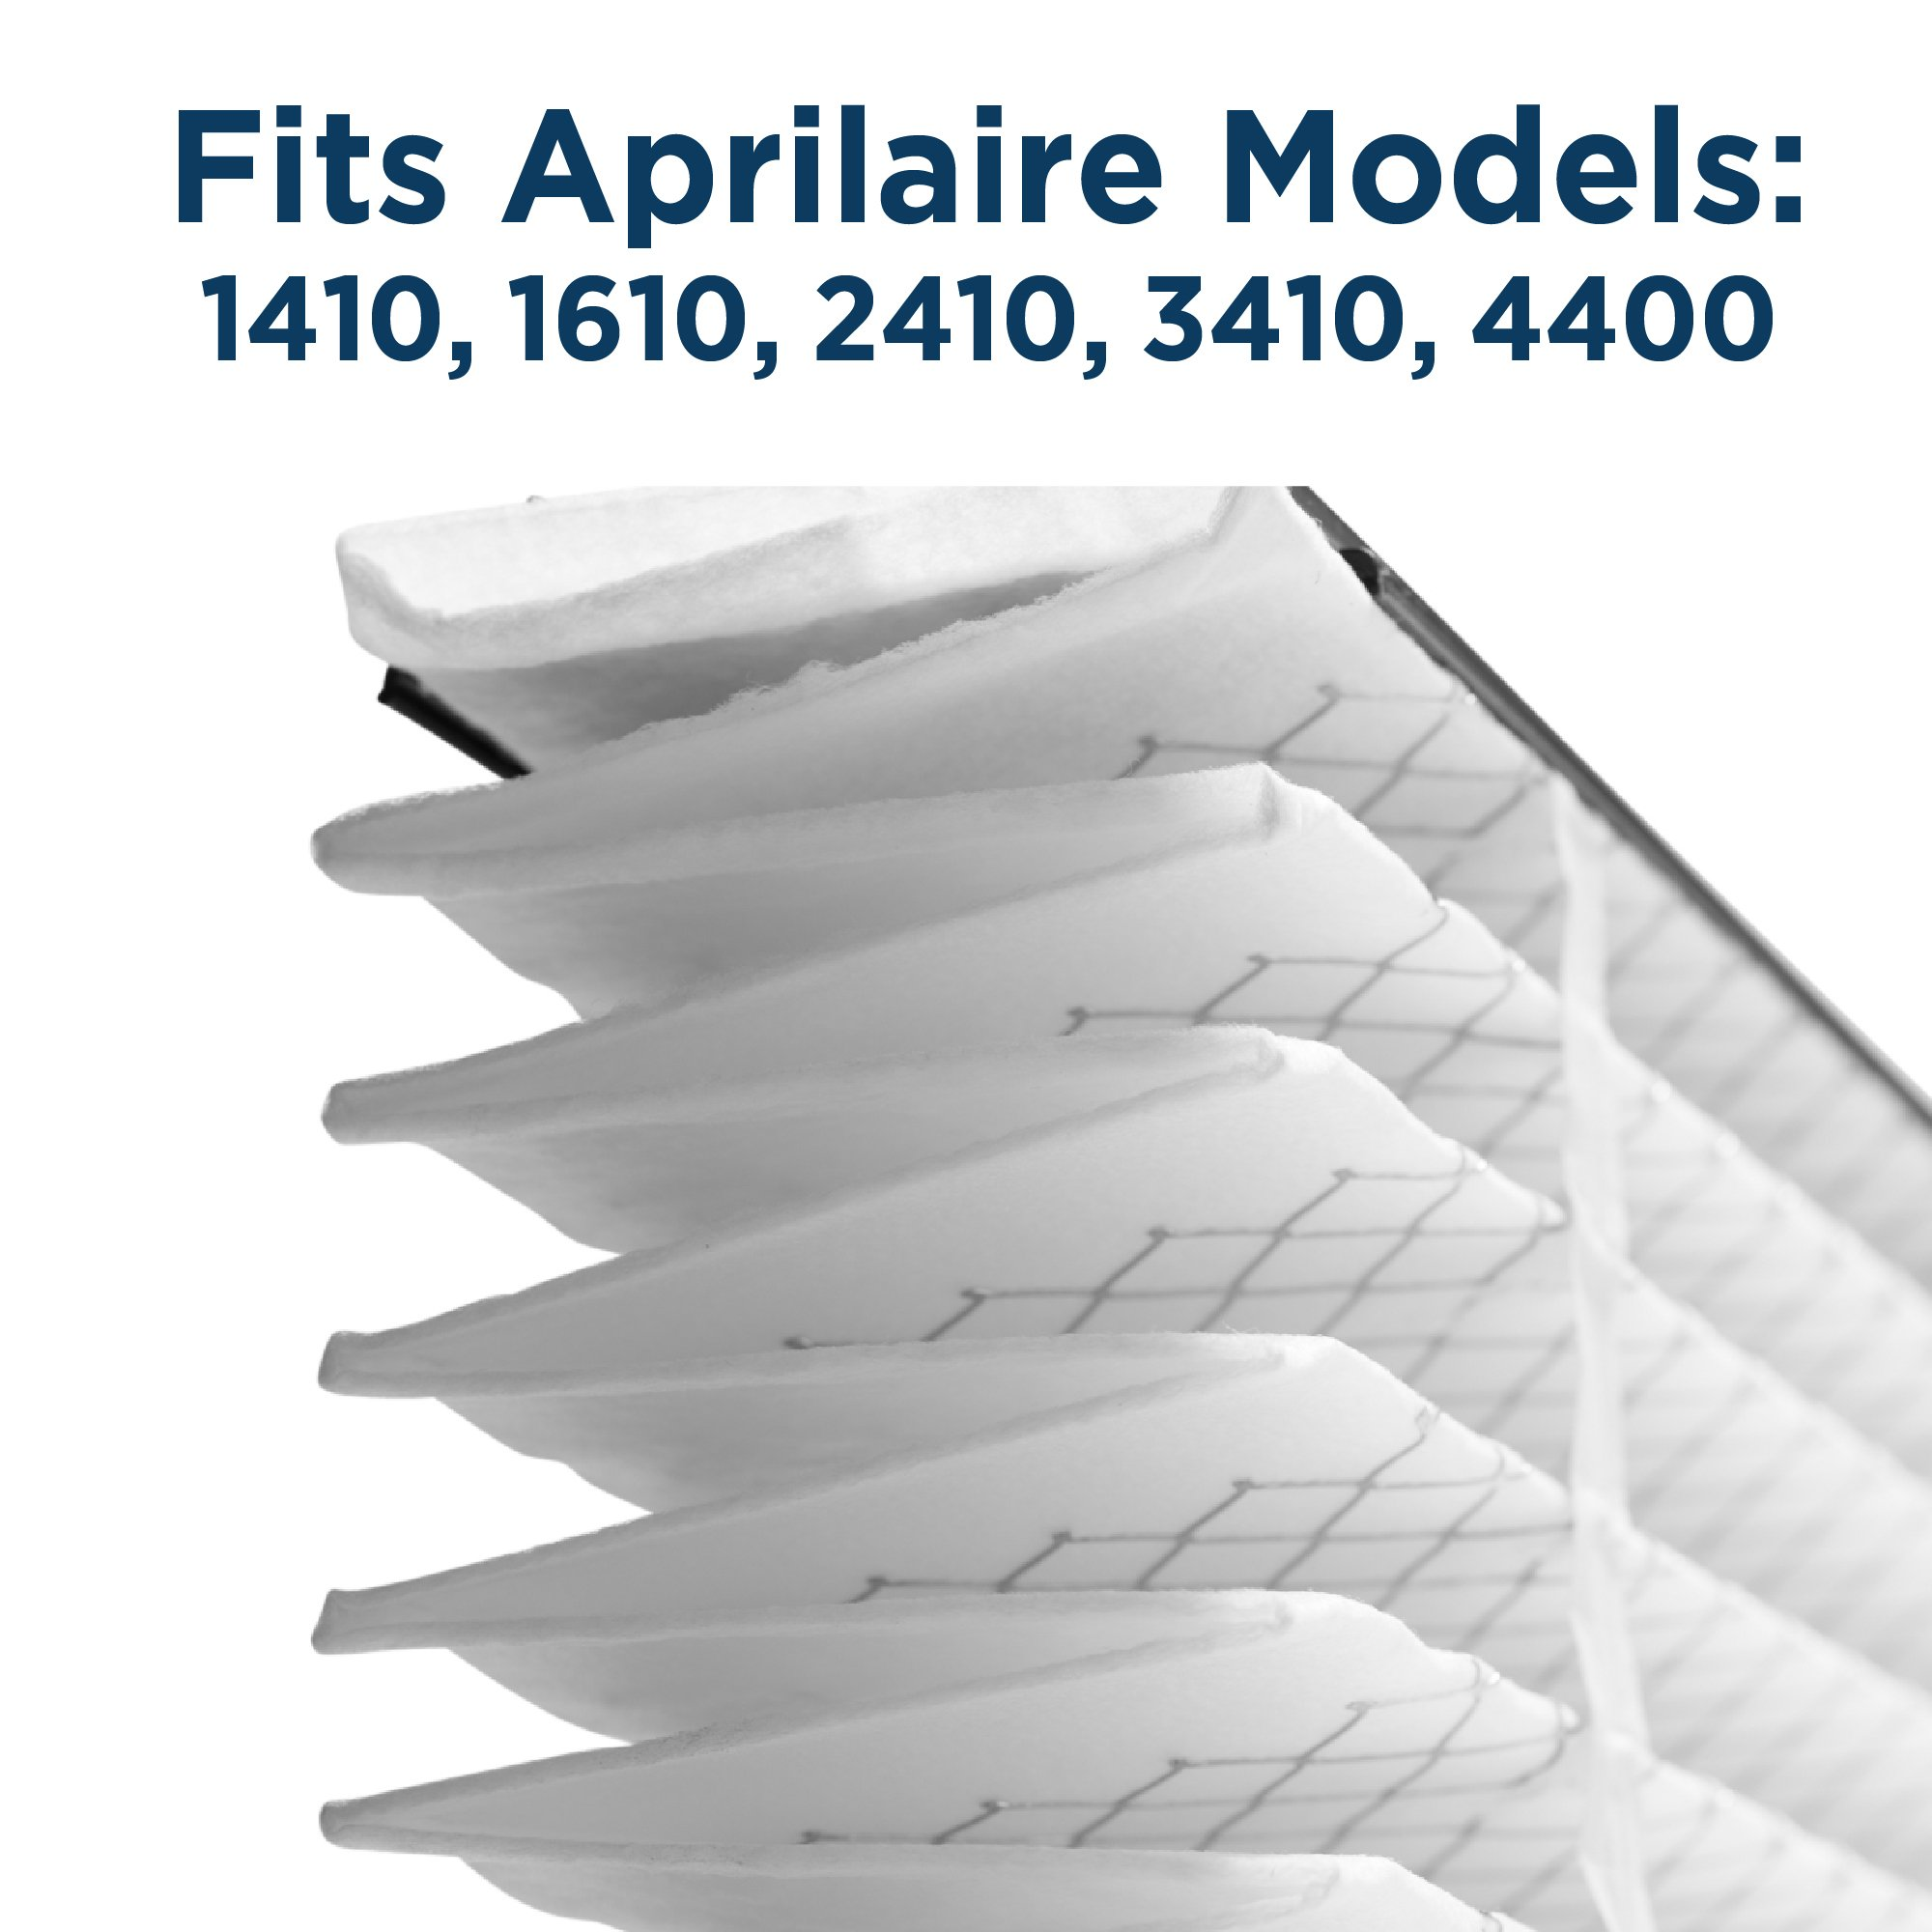 Aprilaire 410 Air Filter 8 Pack for Air Purifier Models 1410, 1610, 2410, 3410, 4400 by Aprilaire (Image #4)